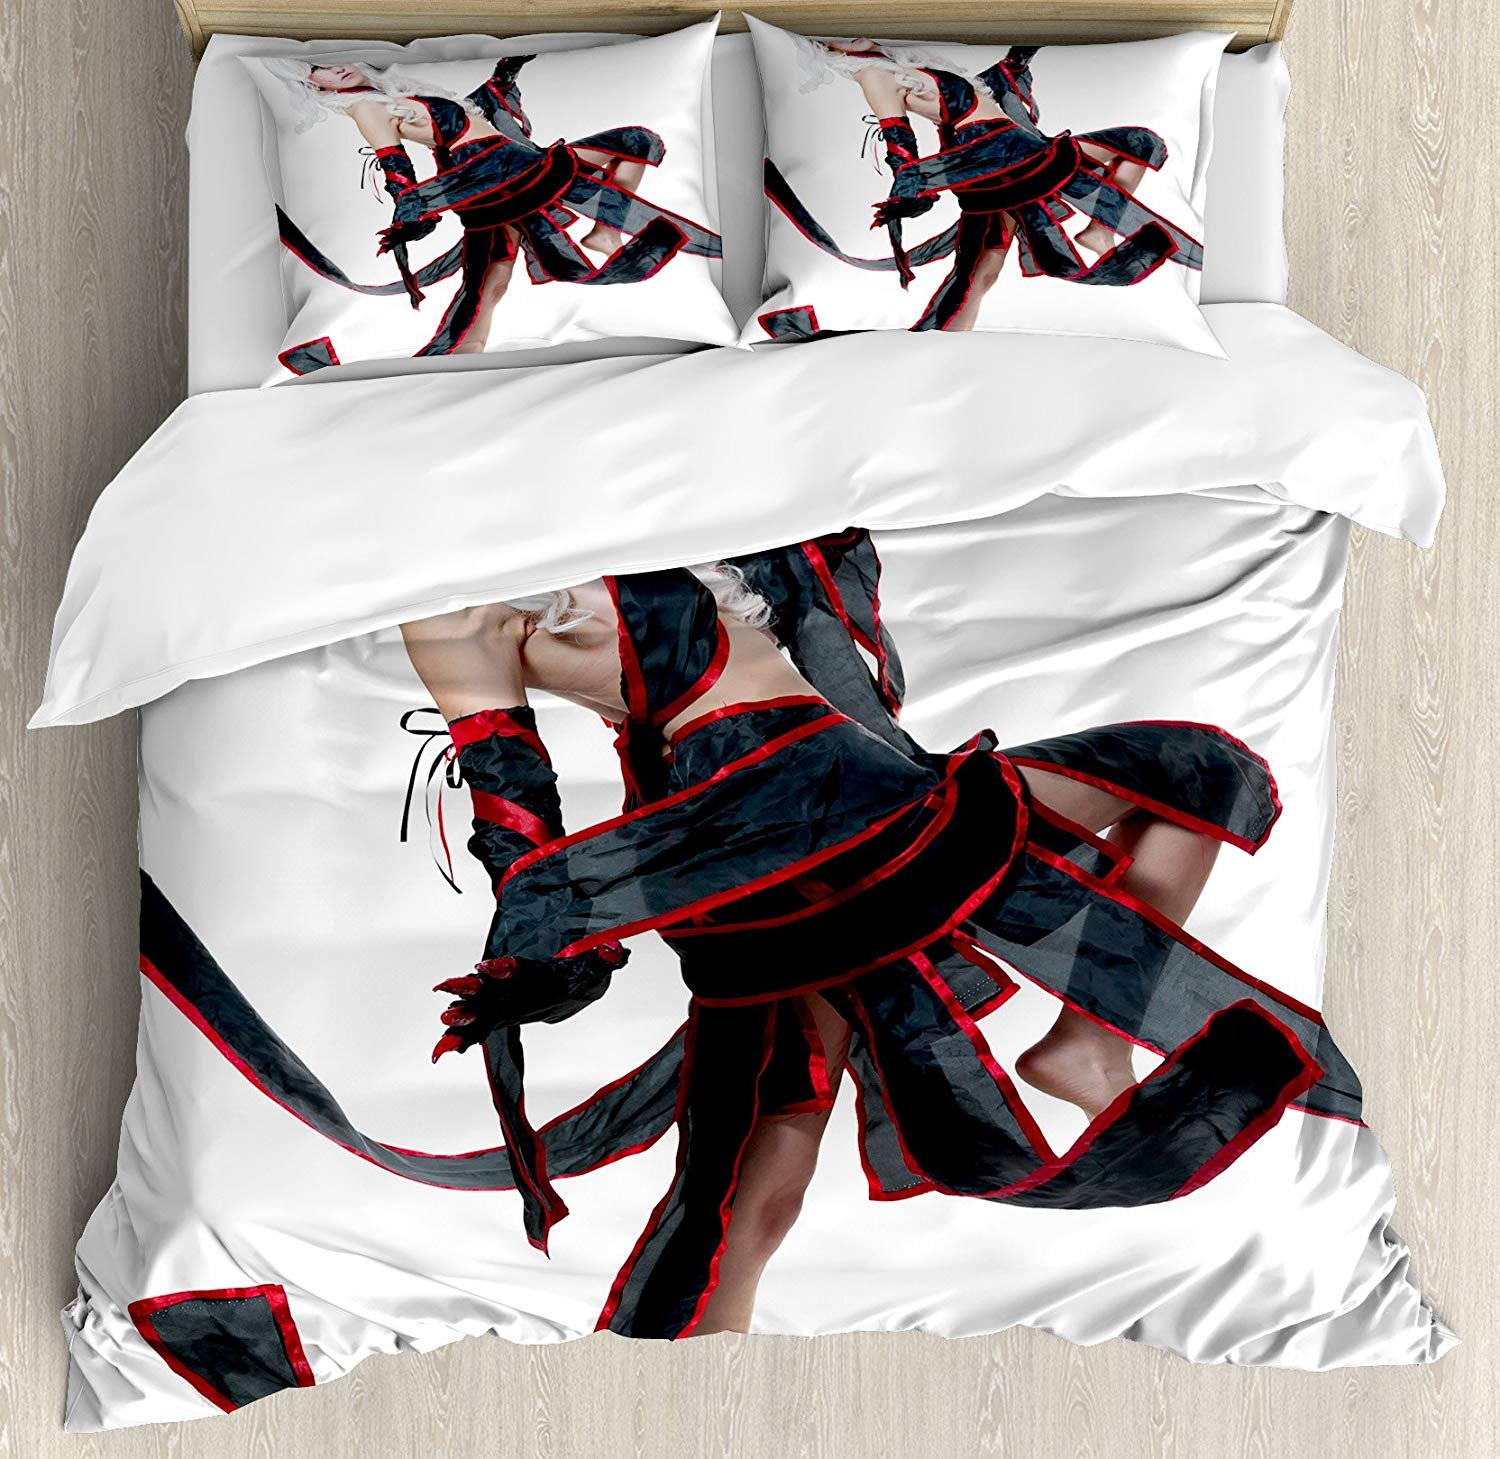 Twin XL Extra Long Bedding Set, Anime Duvet Cover Set, Posing Warrior Girl in Manga Style Japanese Culture Themed Illustration Art, Cosy House Collection 4 Piece Bedding Sets